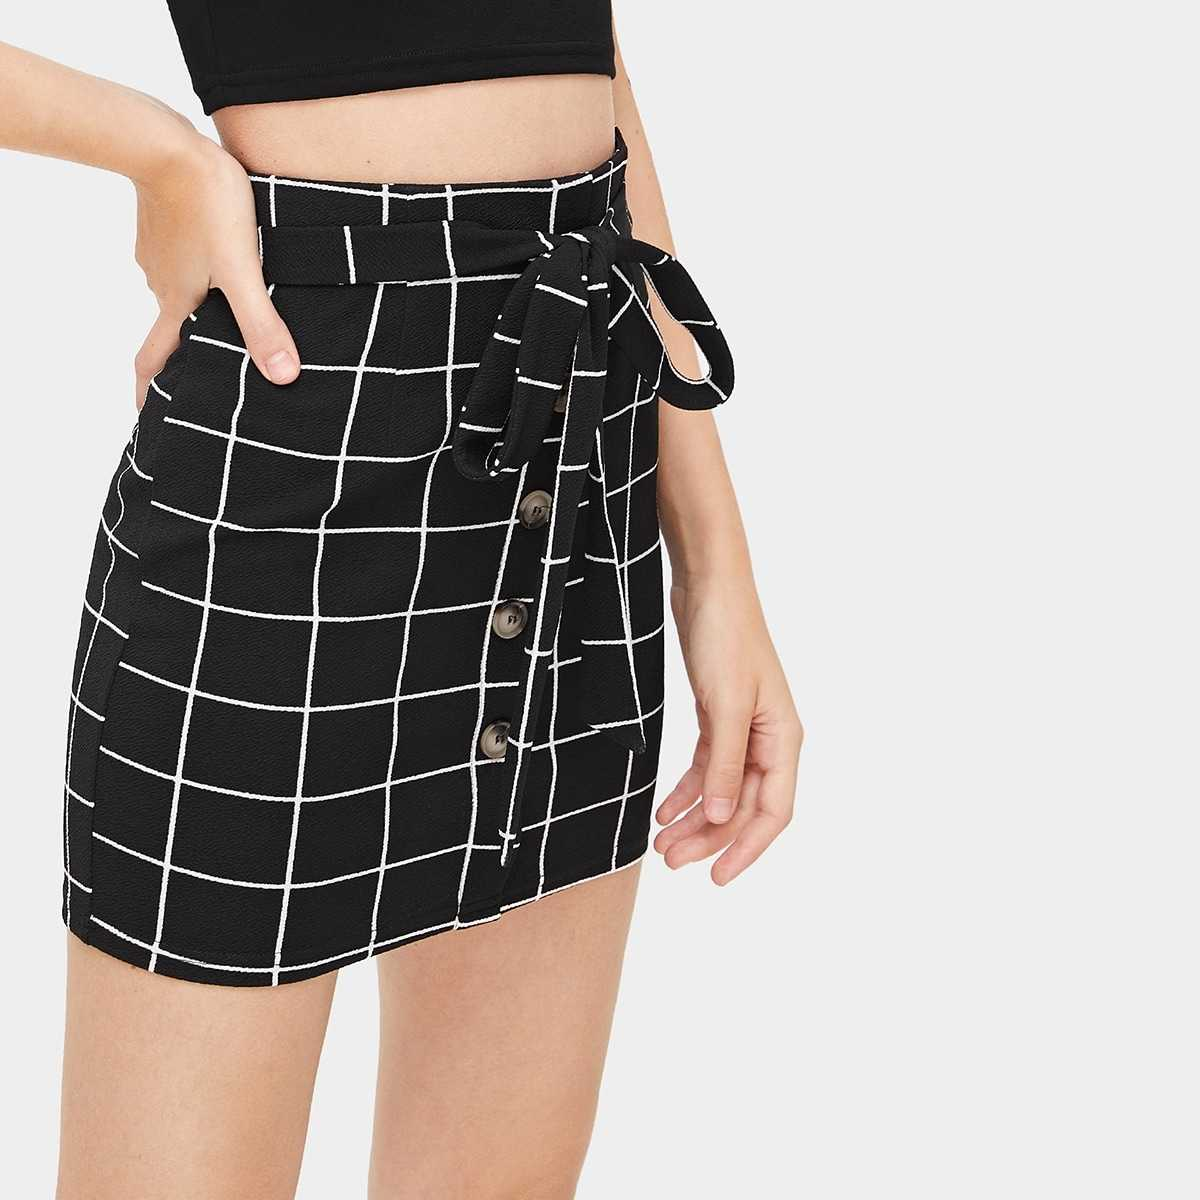 Button Front Grid Belted Skirt in Black and White by ROMWE on GOOFASH